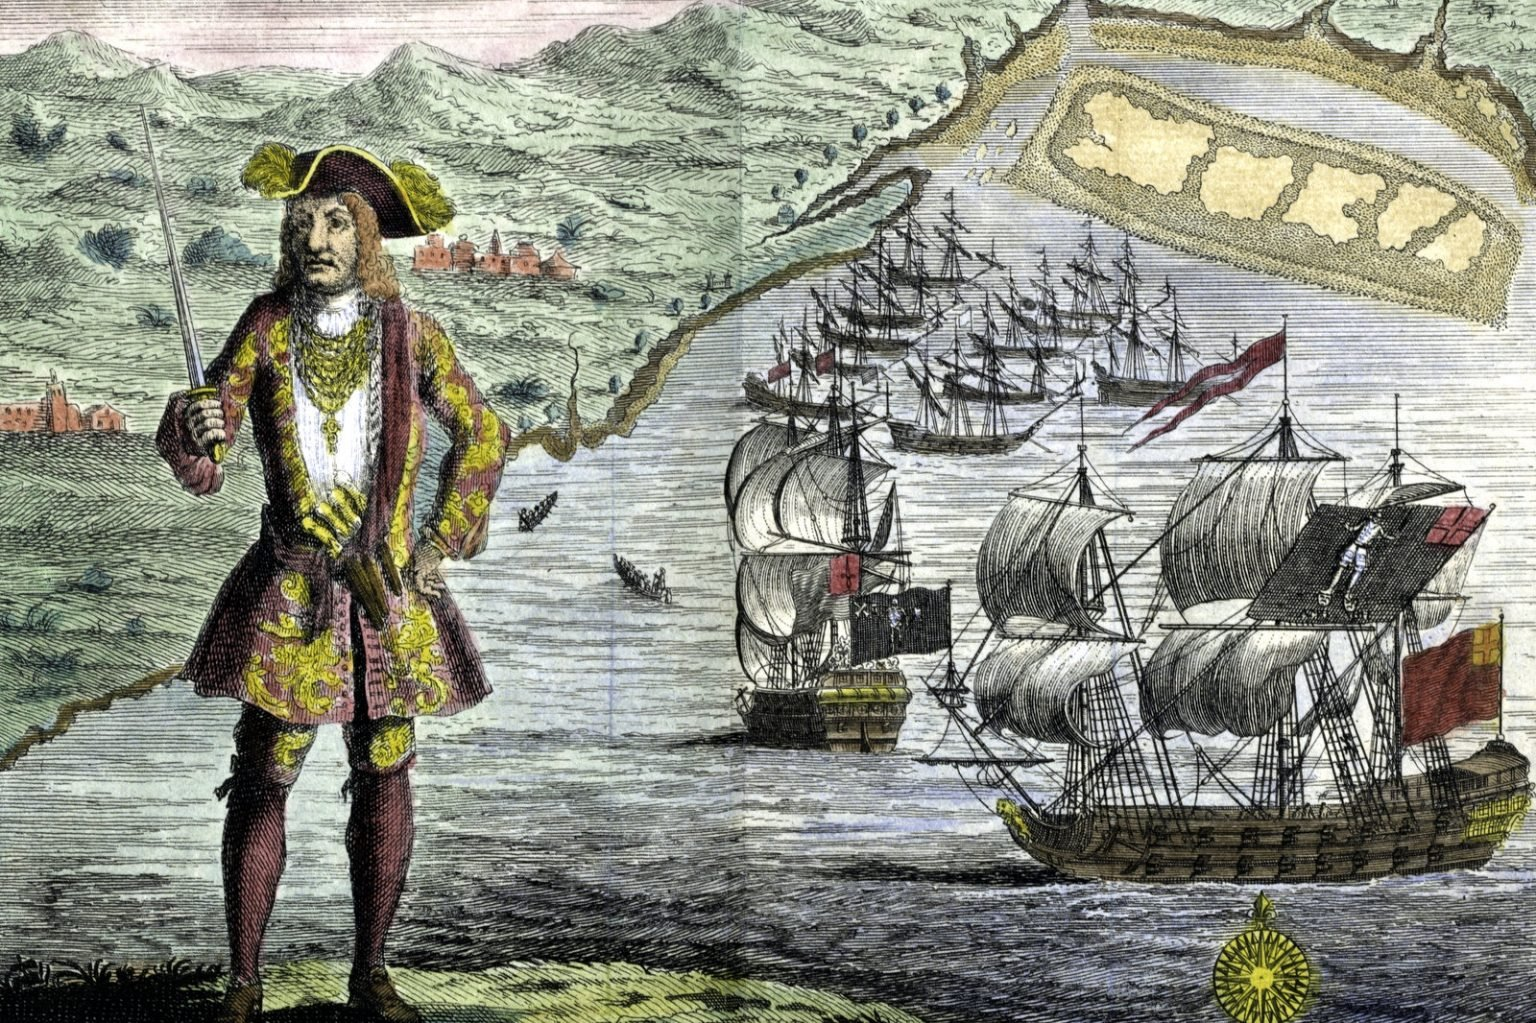 The Pirate Code The rules of the sea for the infamous Black Bart's ship in the 1700s